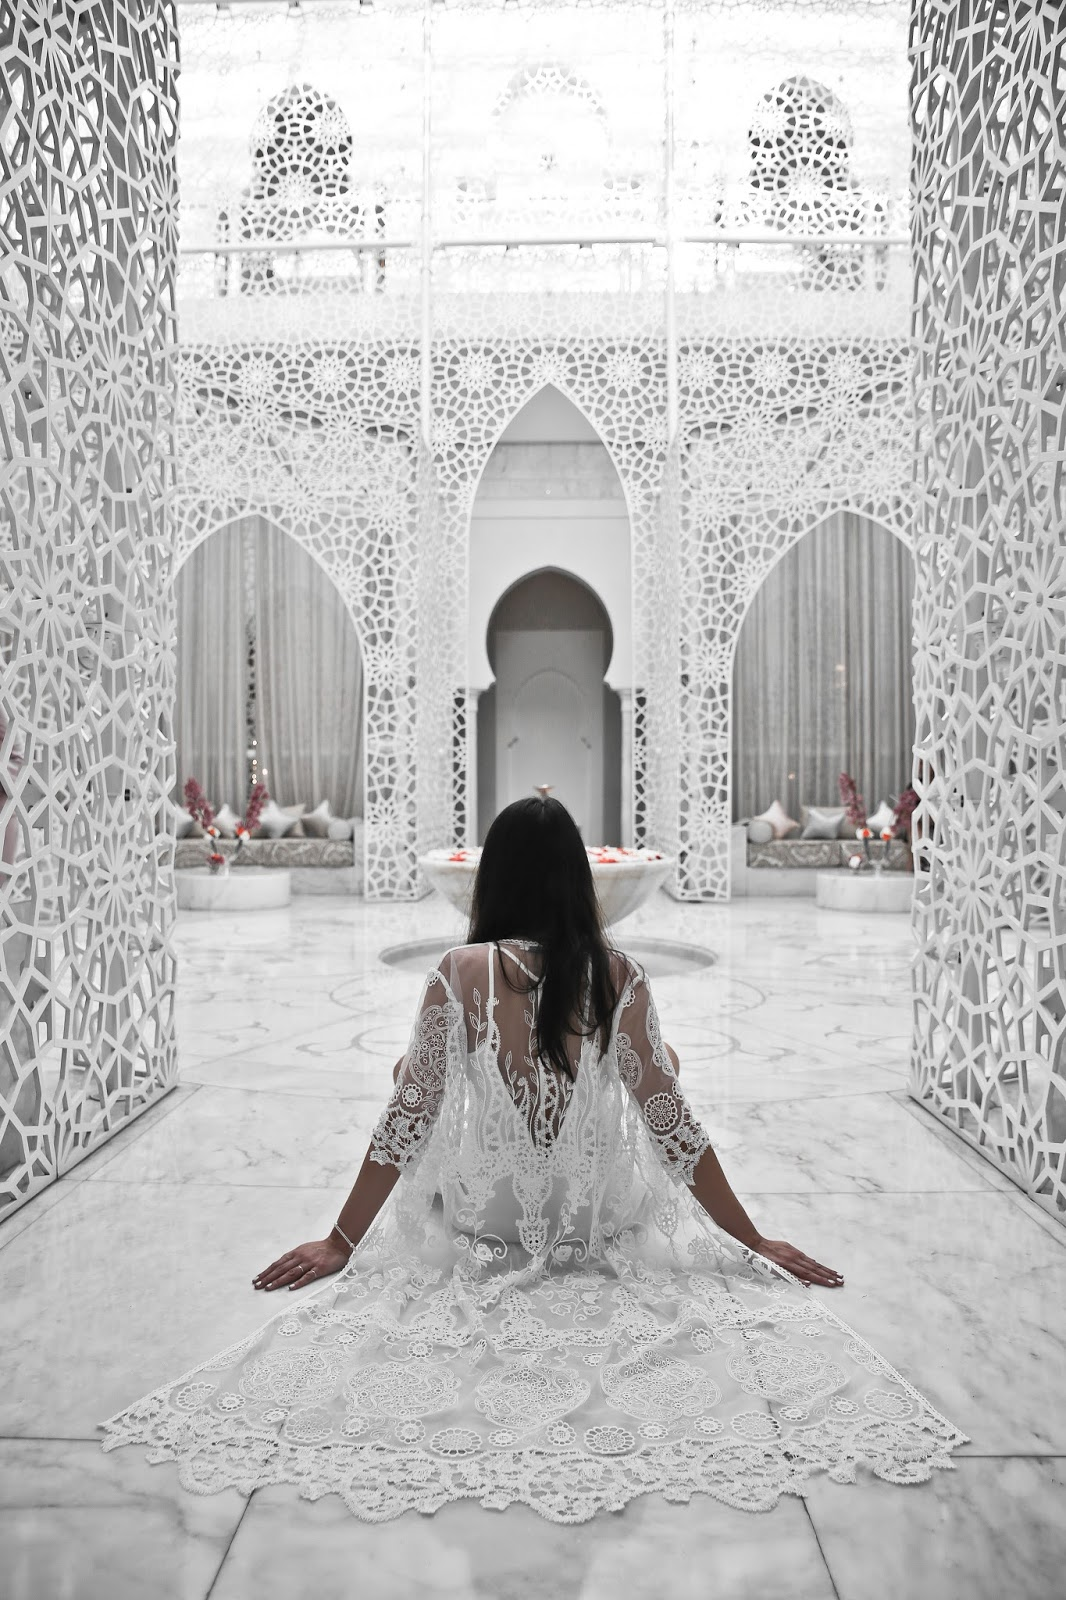 Royal Mansour, Royal Mansour Marrakech, luxury hotel, mowoblog